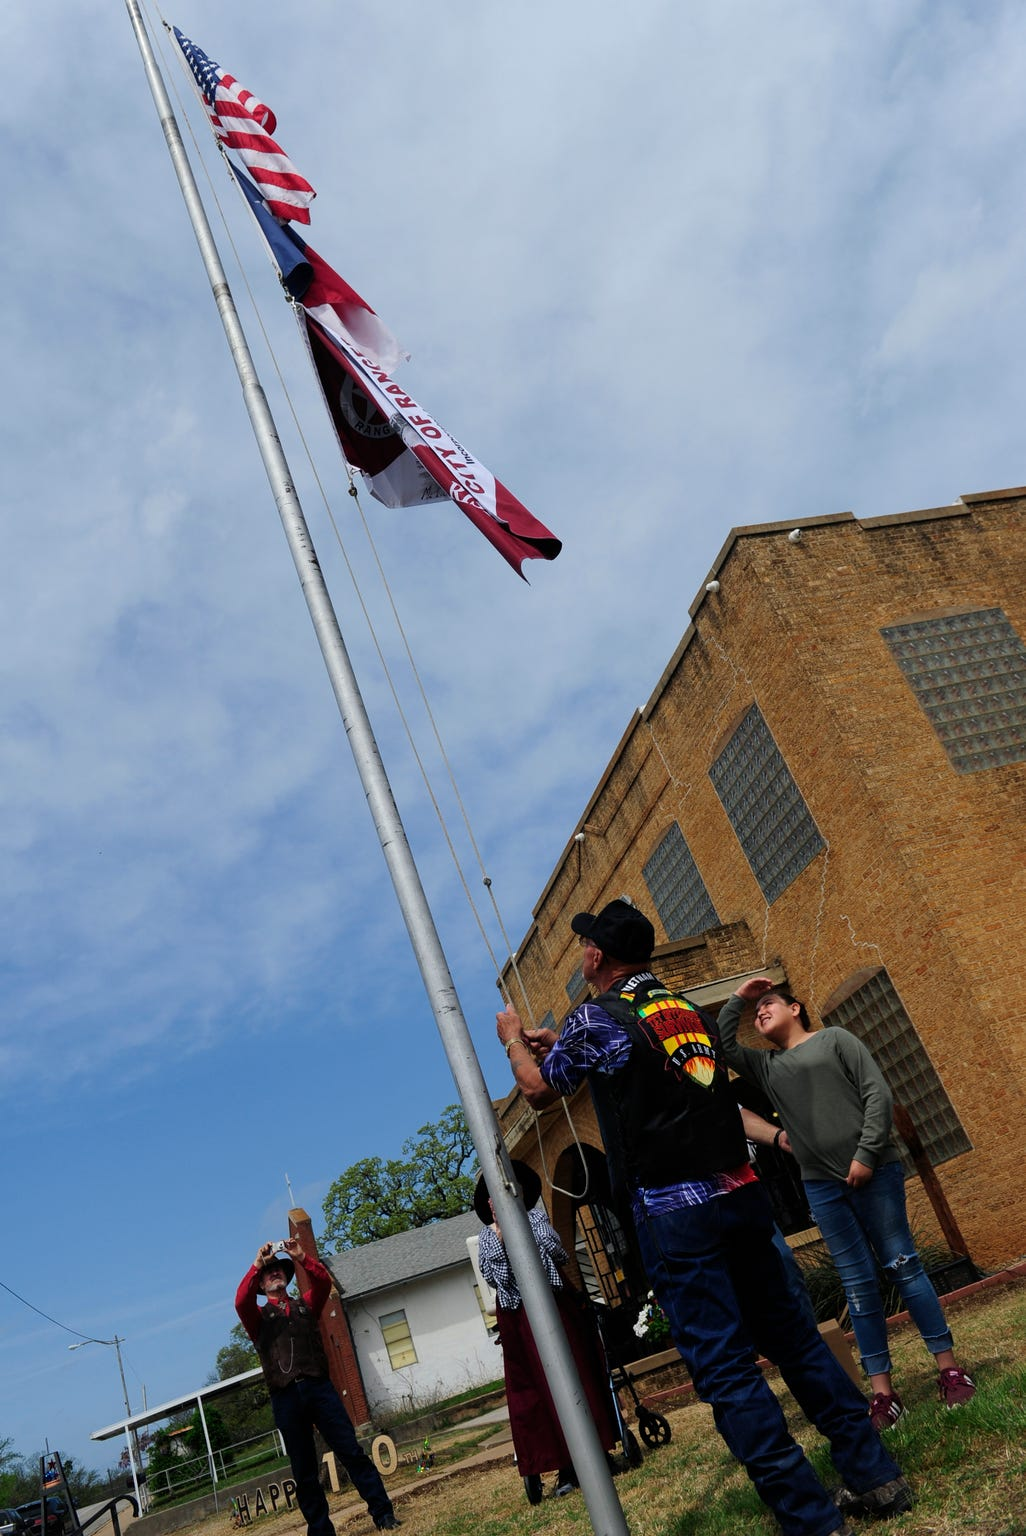 LilliyAna Hernandez, 12, shades her eyes as she watches as her flag is raised over Ranger City Hall Saturday April 6, 2019. The sixth-grader's design was chosen from 101 entries to represent the town which celebrated the centennial anniversary of its charter over the weekend.